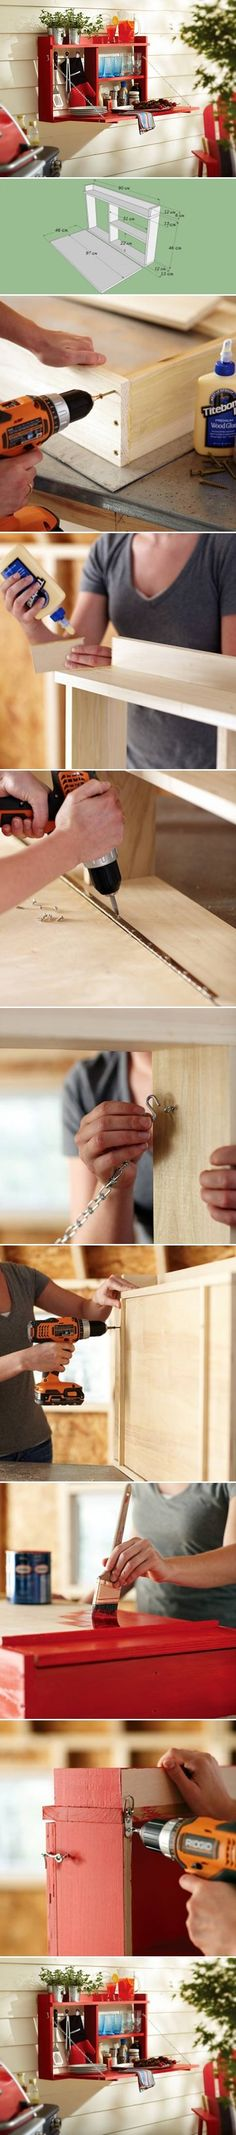 DIY Wall Mounted Folding Table Pictures, Photos, and Images for Facebook, Tumblr, Pinterest, and Twitter